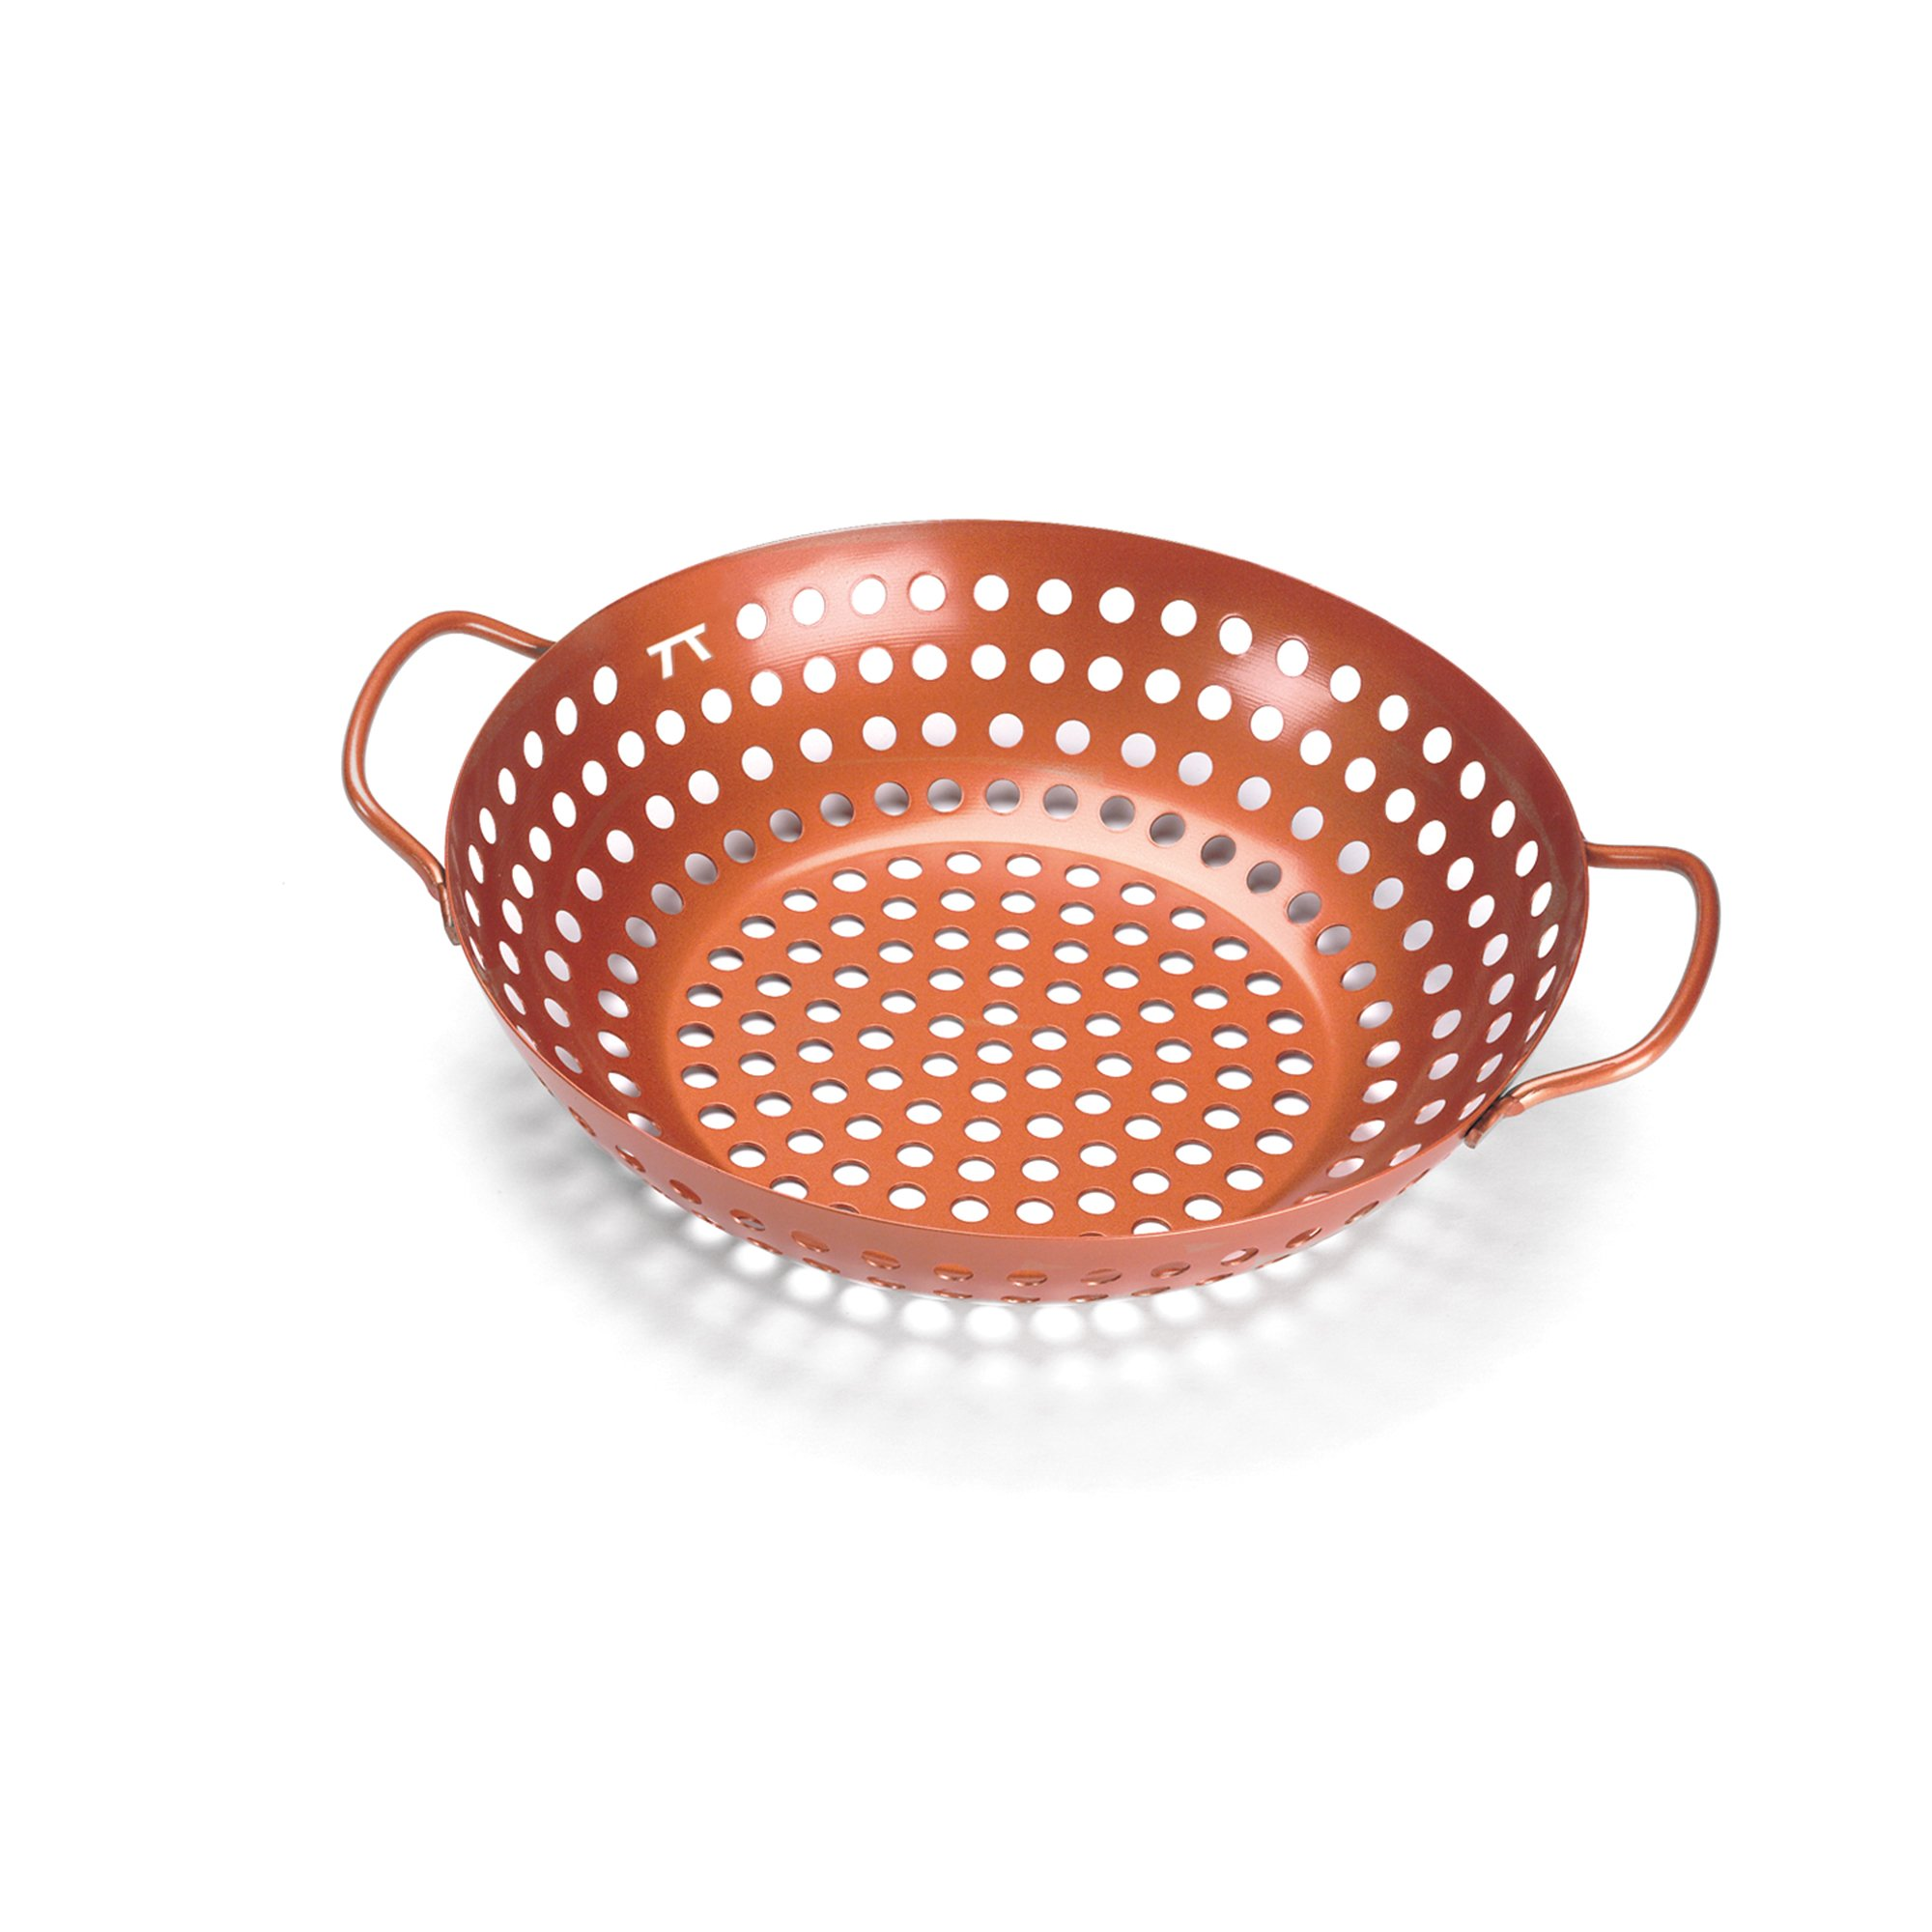 Outset QN70 Round Grill Wok, Copper Non-Stick